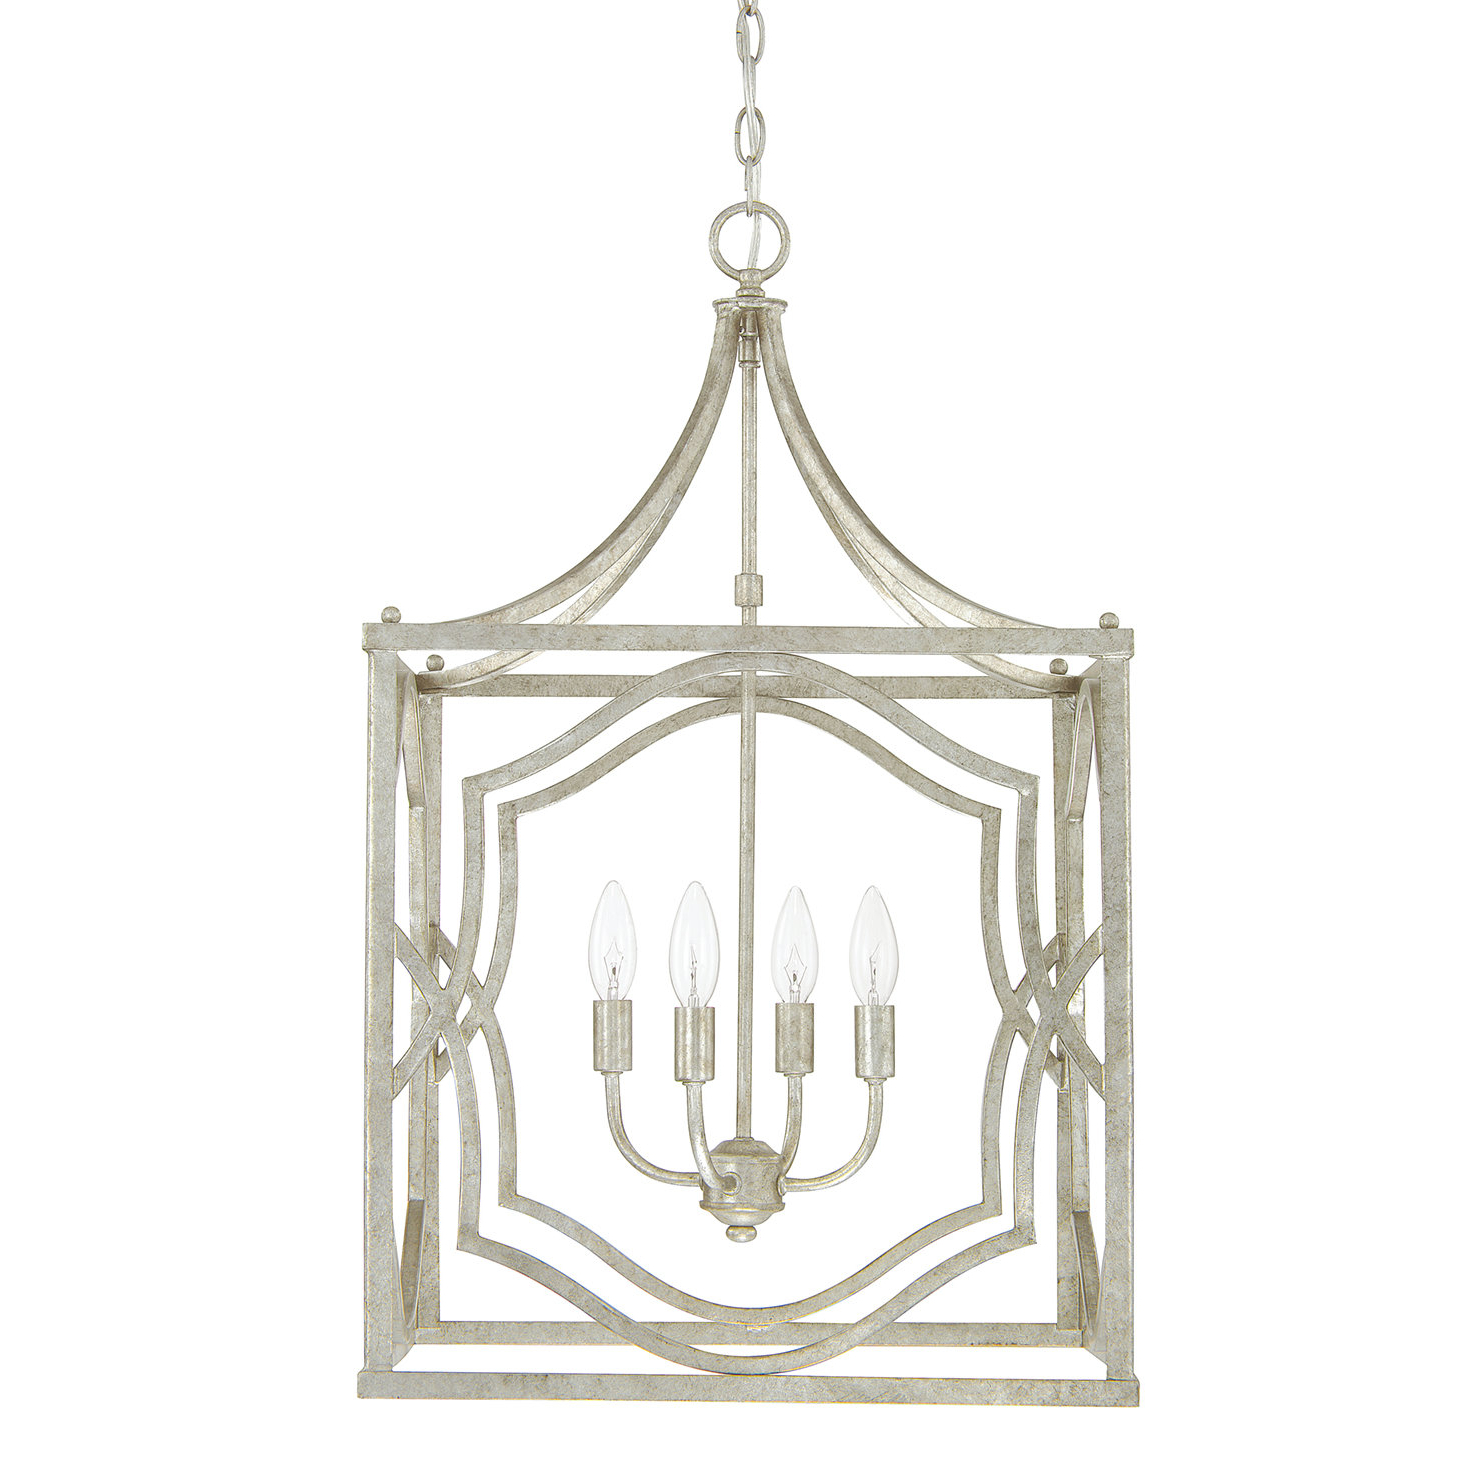 Destrey 4 Light Lantern Pendant Within 2019 Destrey 3 Light Lantern Square/rectangle Pendants (Gallery 5 of 20)